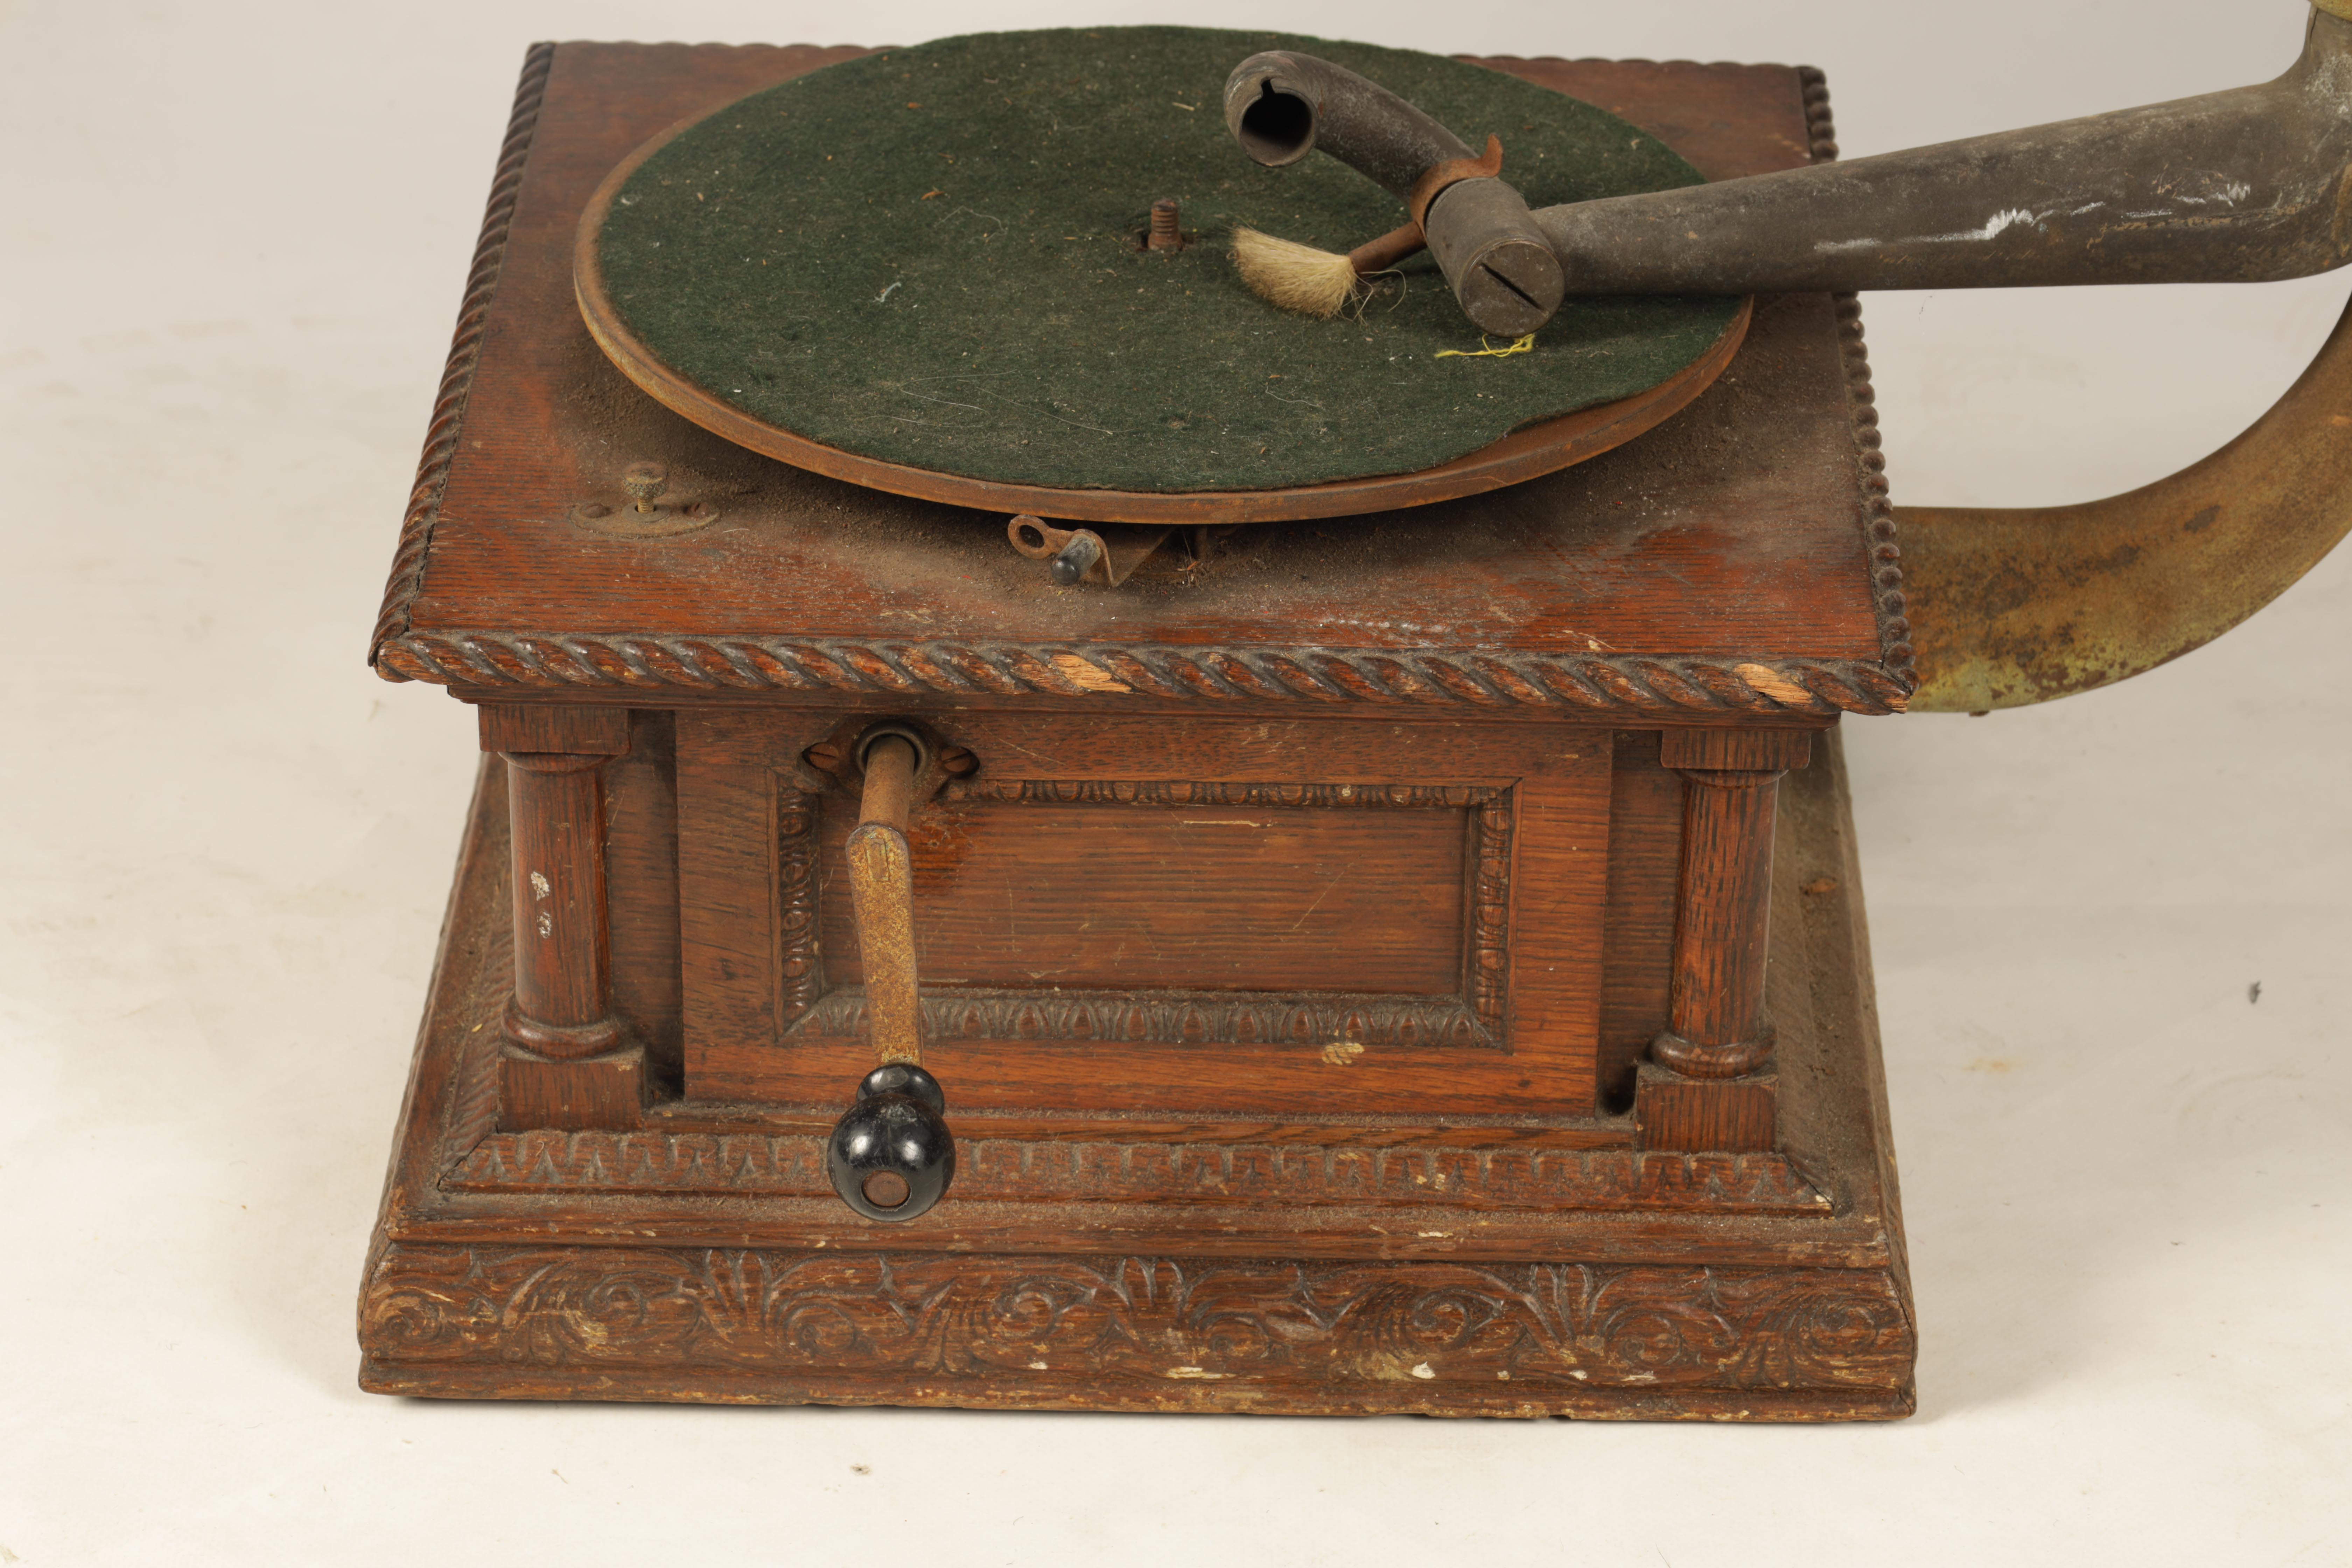 AN EARLY 20TH CENTURY OAK CASED HORN GRAMOPHONE, BY THE GRAMOPHONE & TYPEWRITER LTD having a - Image 3 of 8